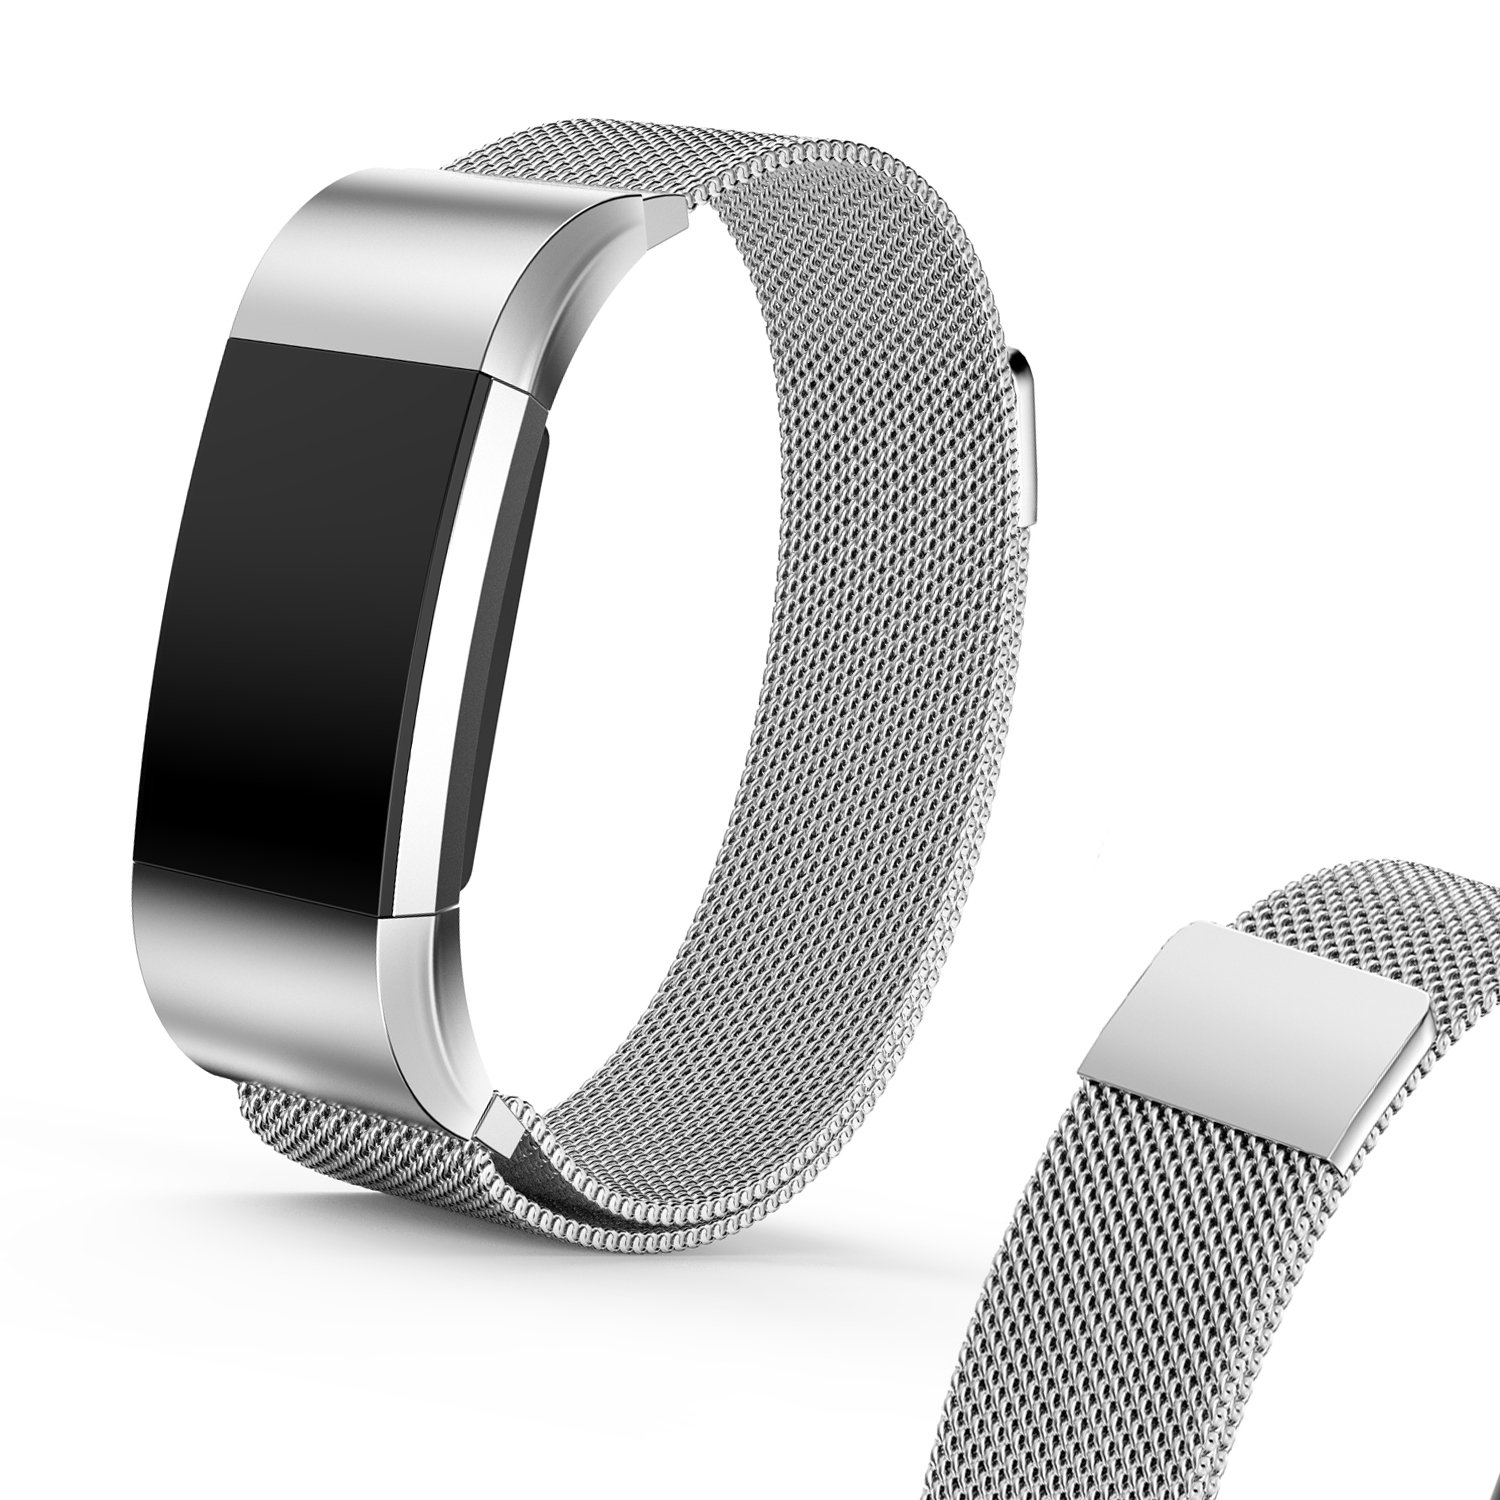 I-SMILE Fitbit Charge 2 Smartwatch Bands, Milanese Magnetic Stainless Steel Metal Replacement Wristband for Fitbit Charge 2, Rose gold, Gold, Black, Silver